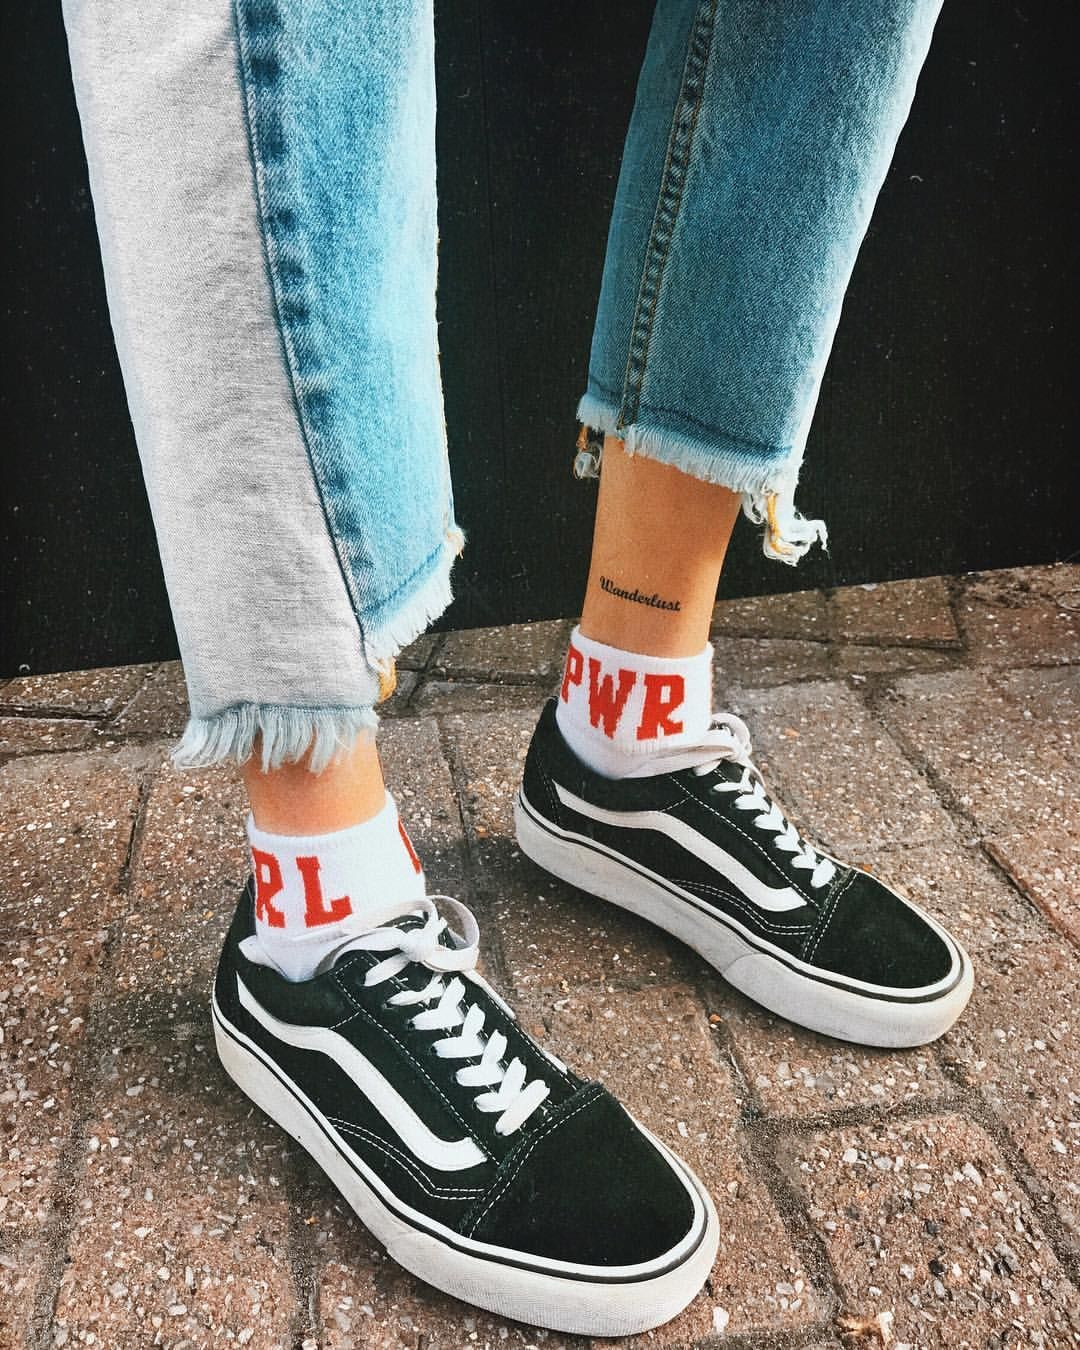 Chic Mix · Grunge OutfitsRetro OutfitsJeans ShoesShoes ...